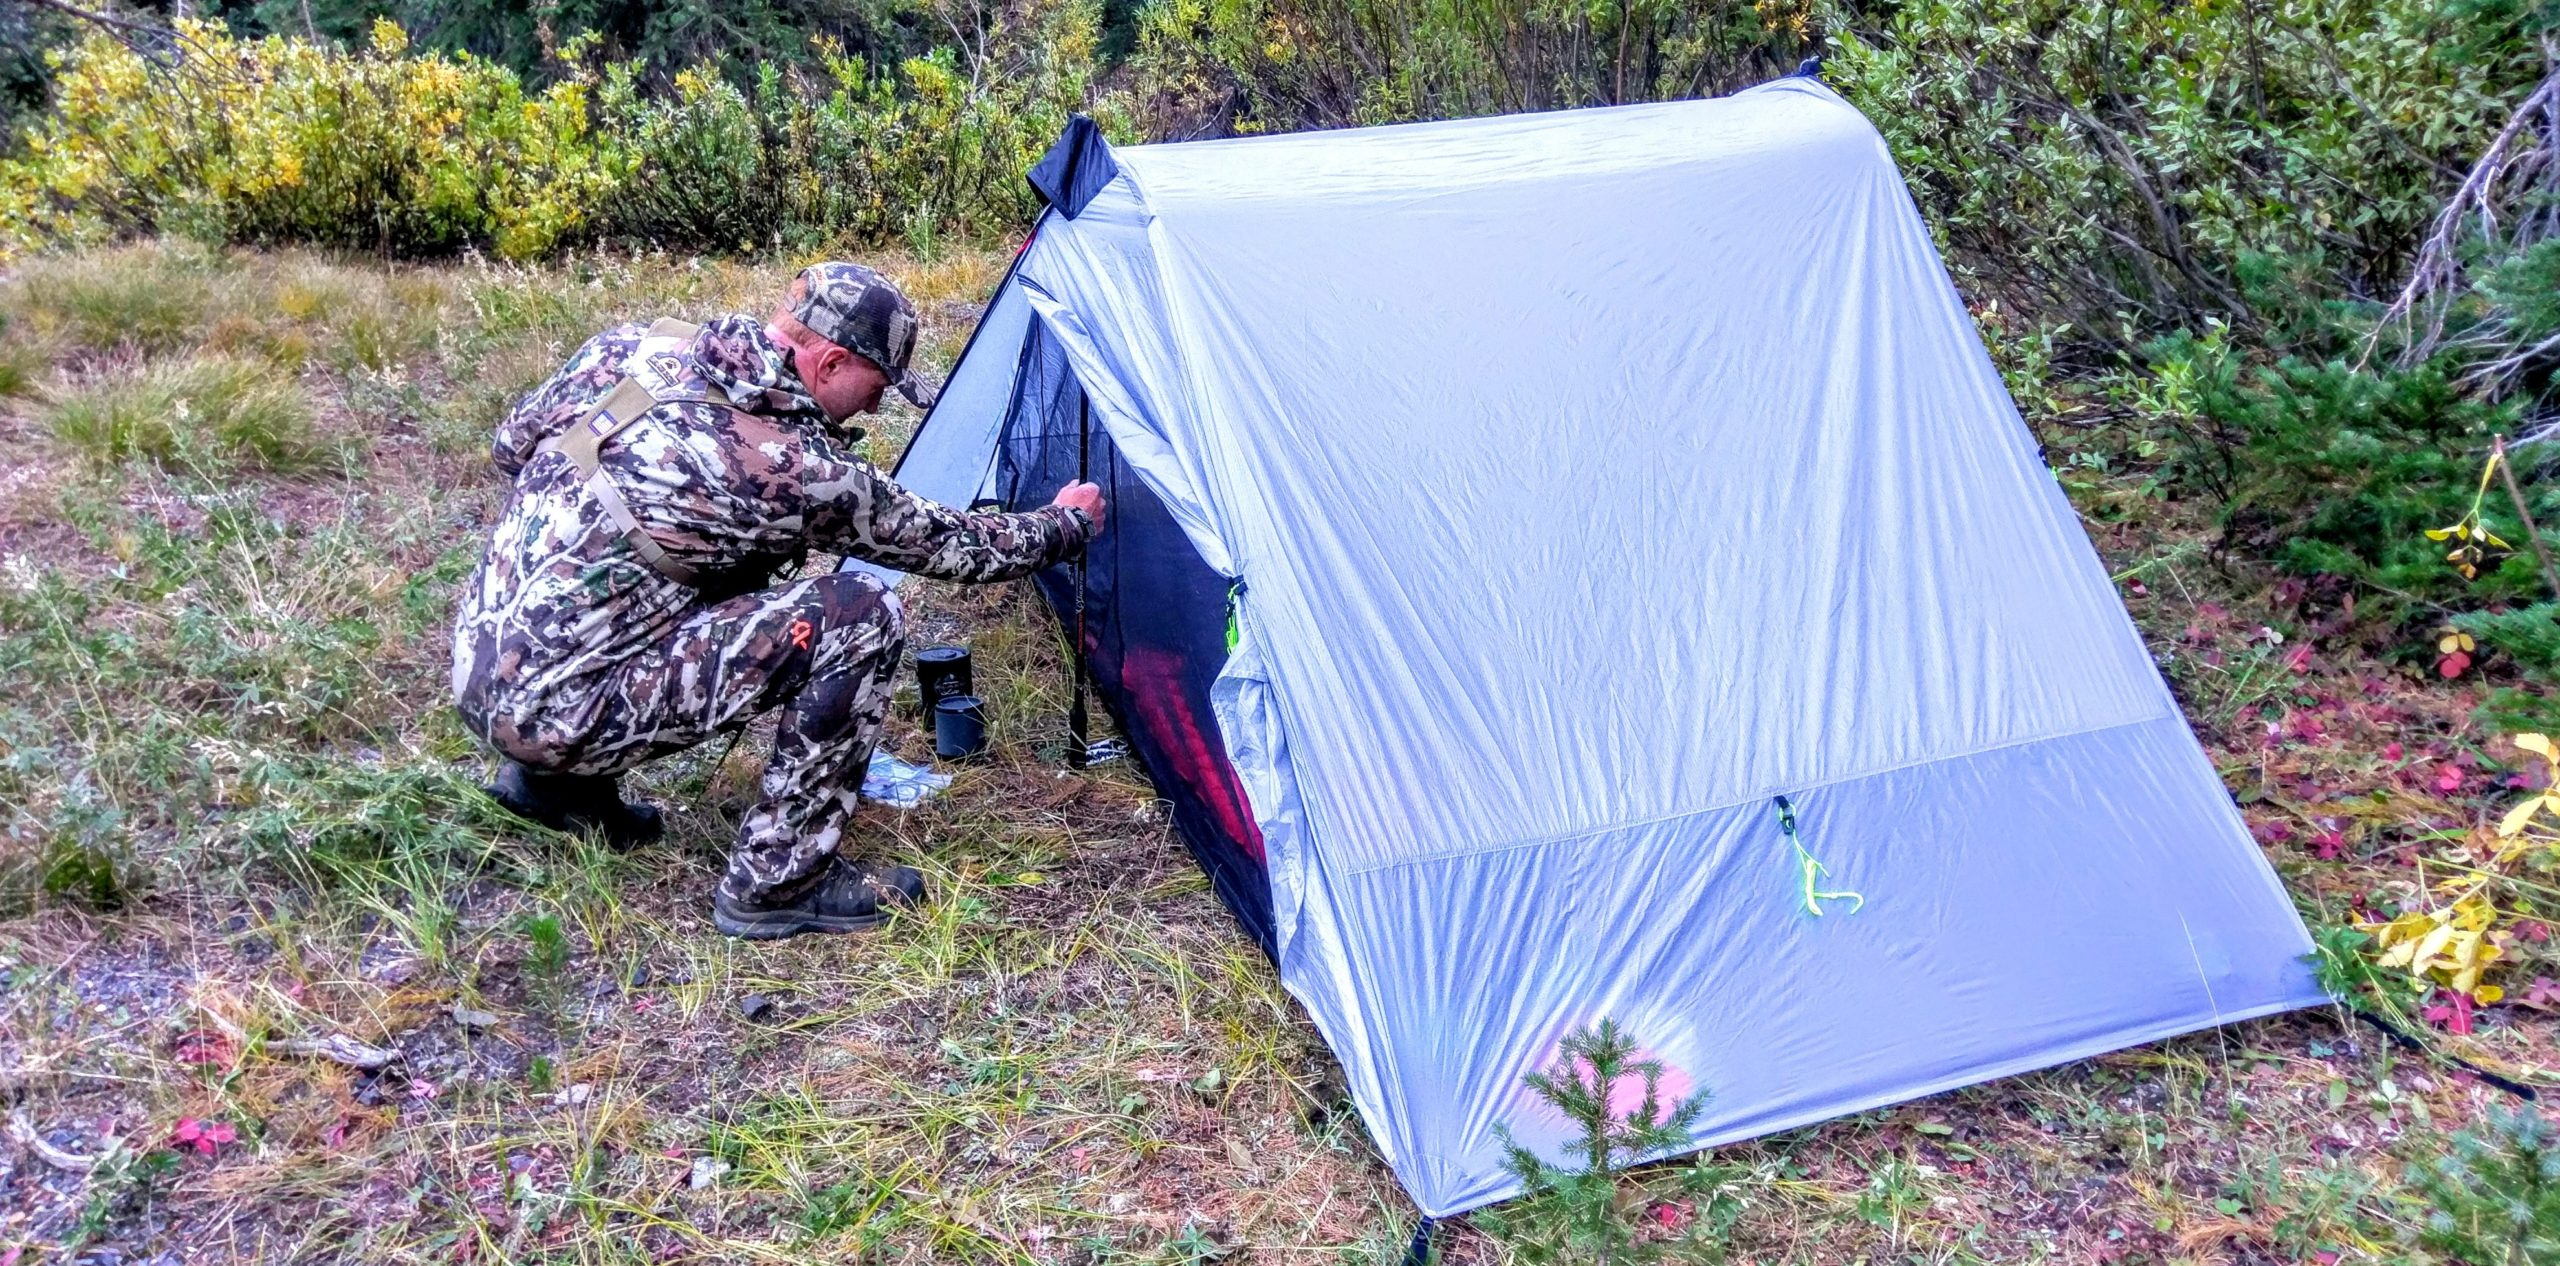 Six Moon Desings Lunar Duo - Best backpacking tent for hunting